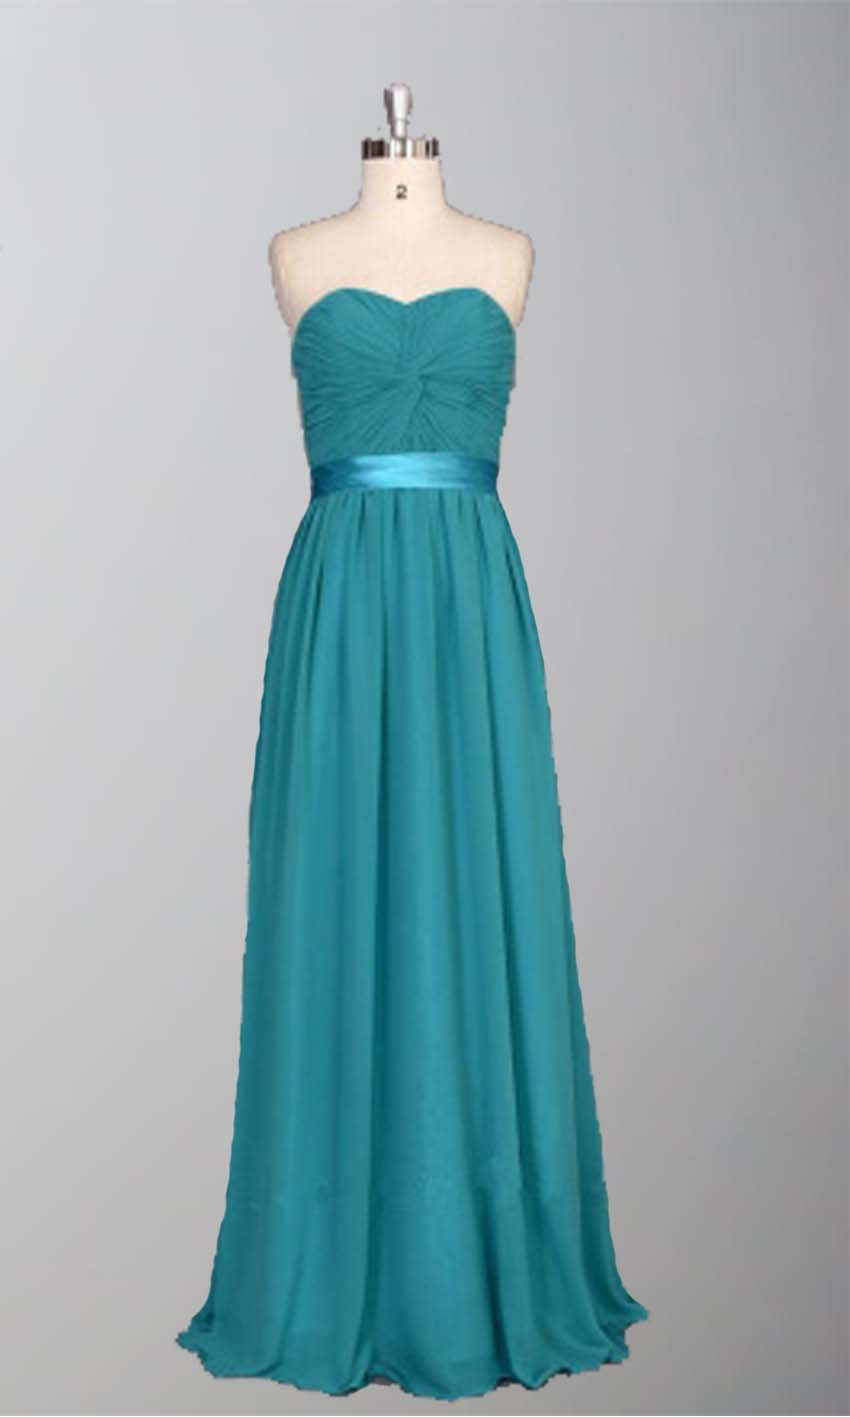 Pleated Twist Sash Long Prom Dress KSP279 [KSP279] - £85.00 : Cheap Prom Dresses Uk, Bridesmaid Dresses, 2014 Prom & Evening Dresses, Look for cheap elegant prom dresses 2014, cocktail gowns, or dresses for special occasions? kissprom.co.uk offers various bridesmaid dresses, evening dress, free shipping to UK etc.